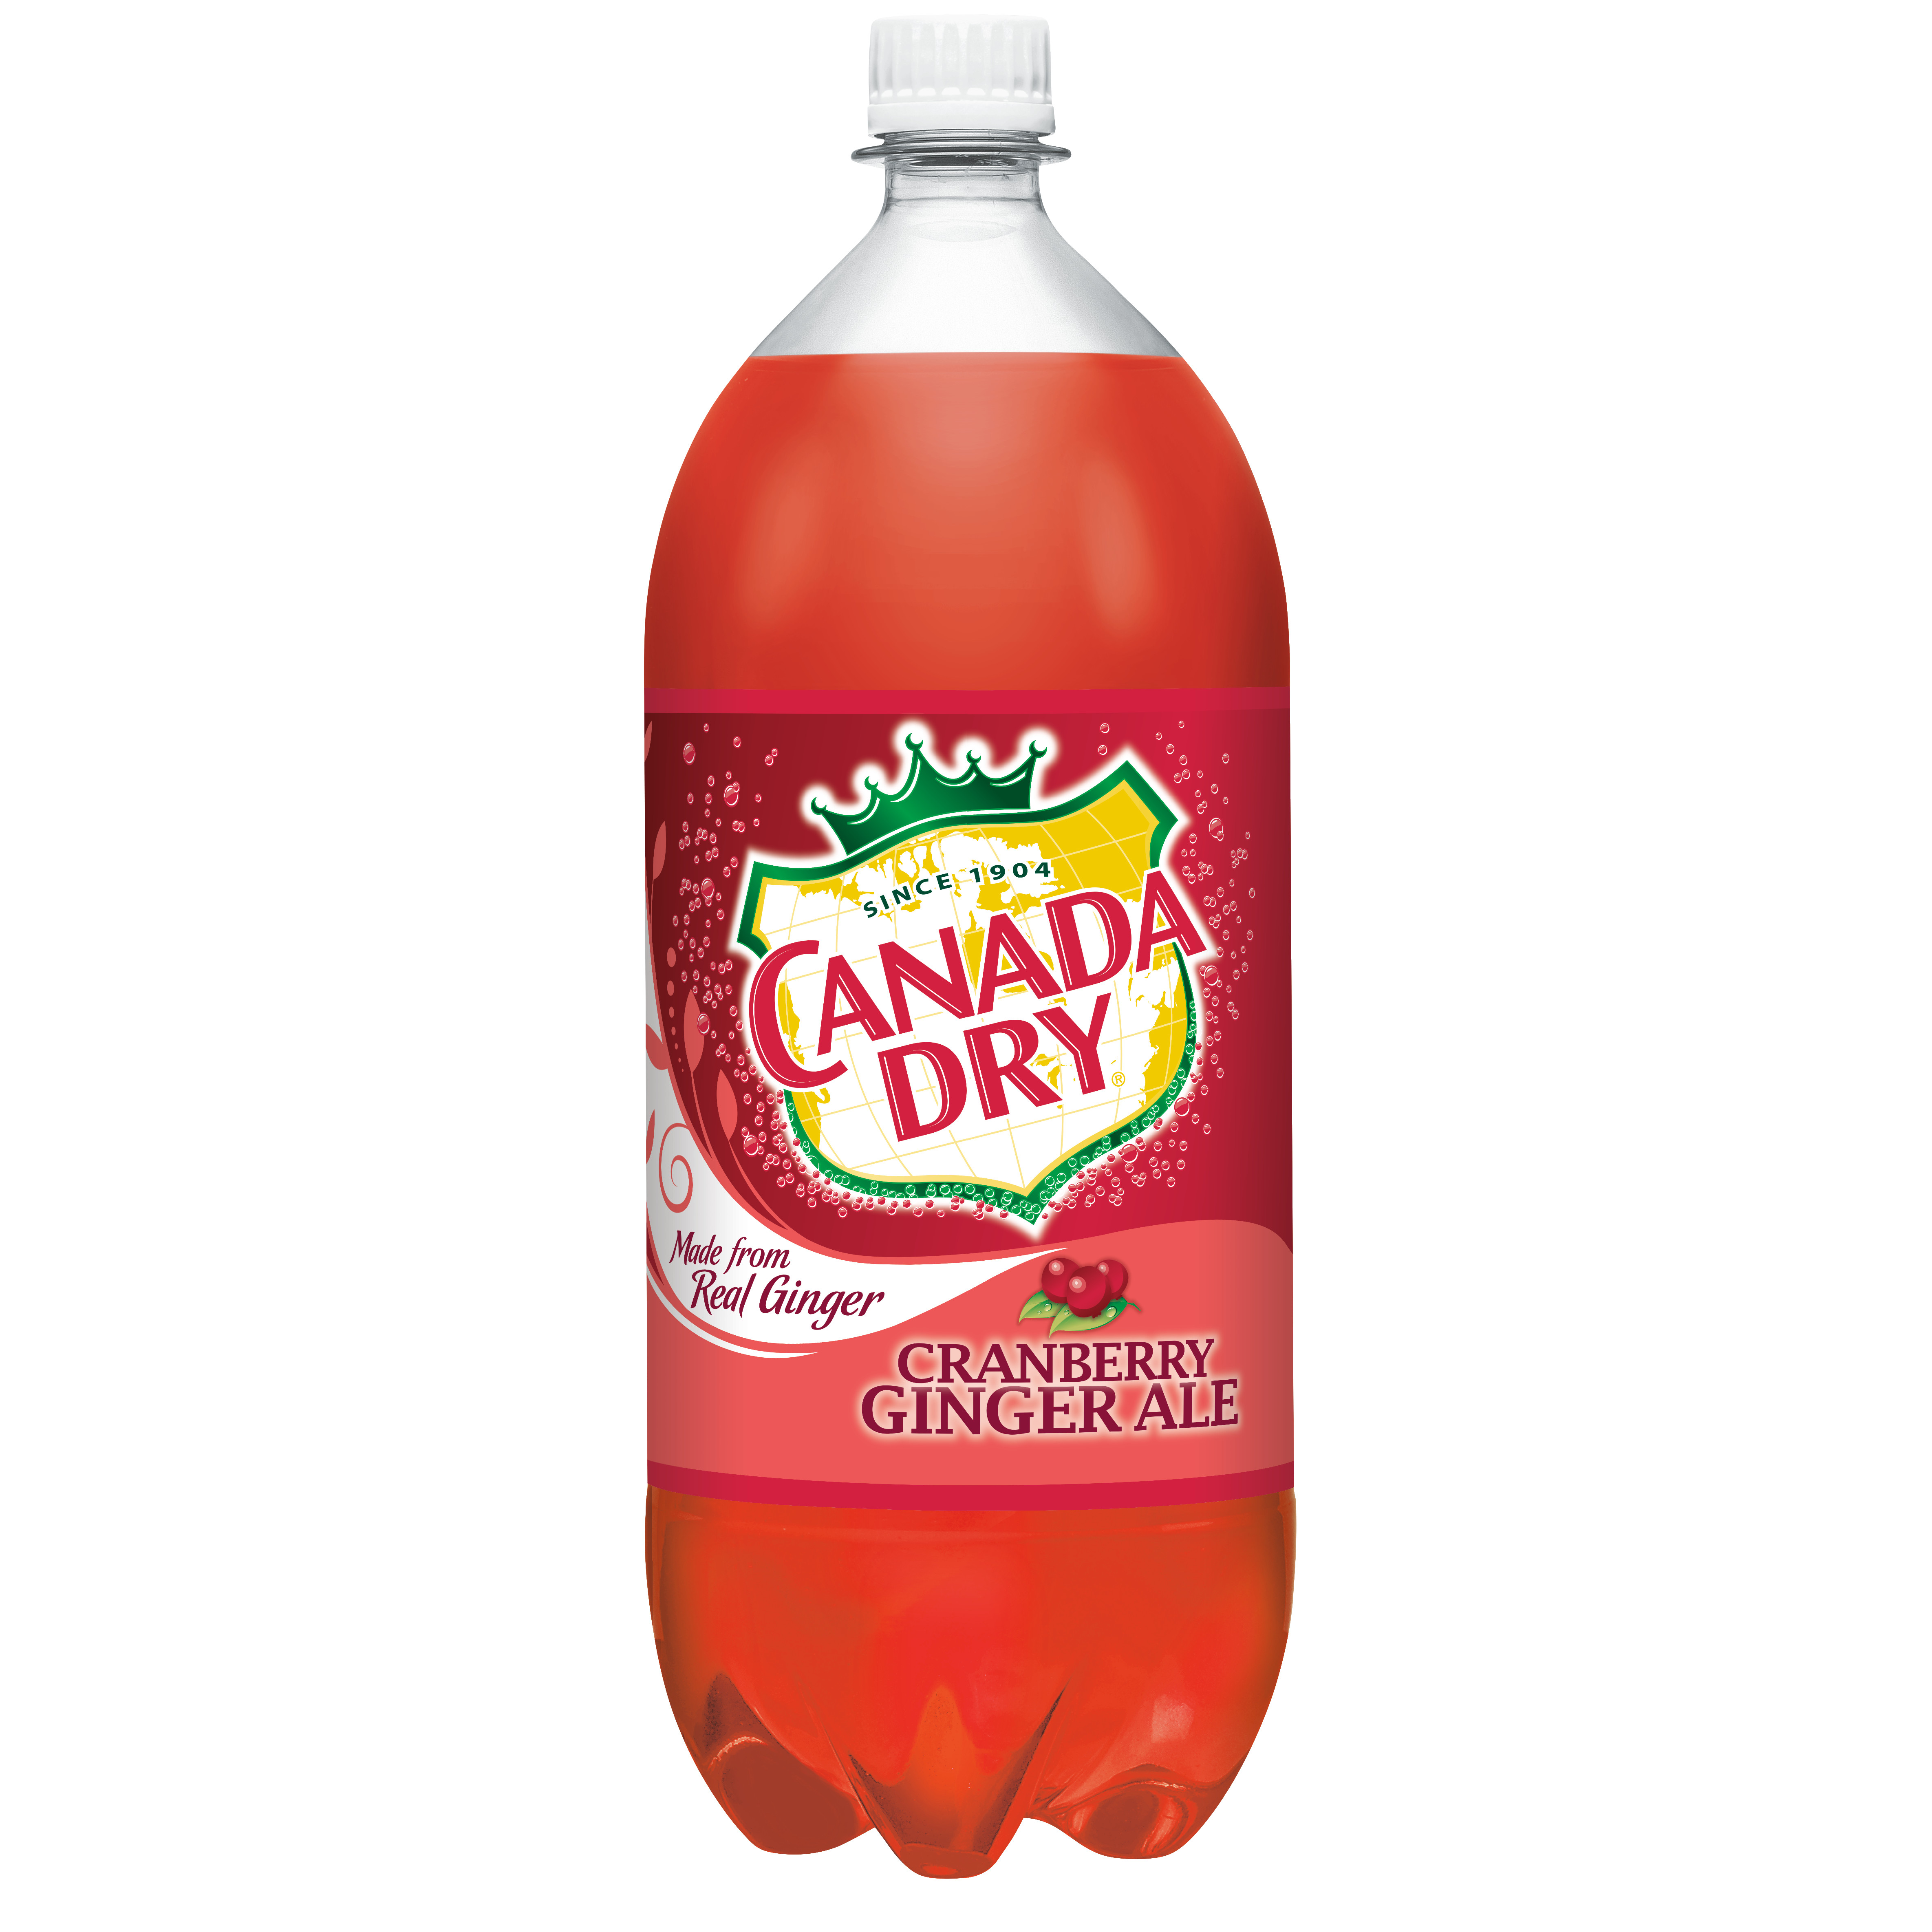 Canada Dry Cranberry Ginger Ale, 2 L